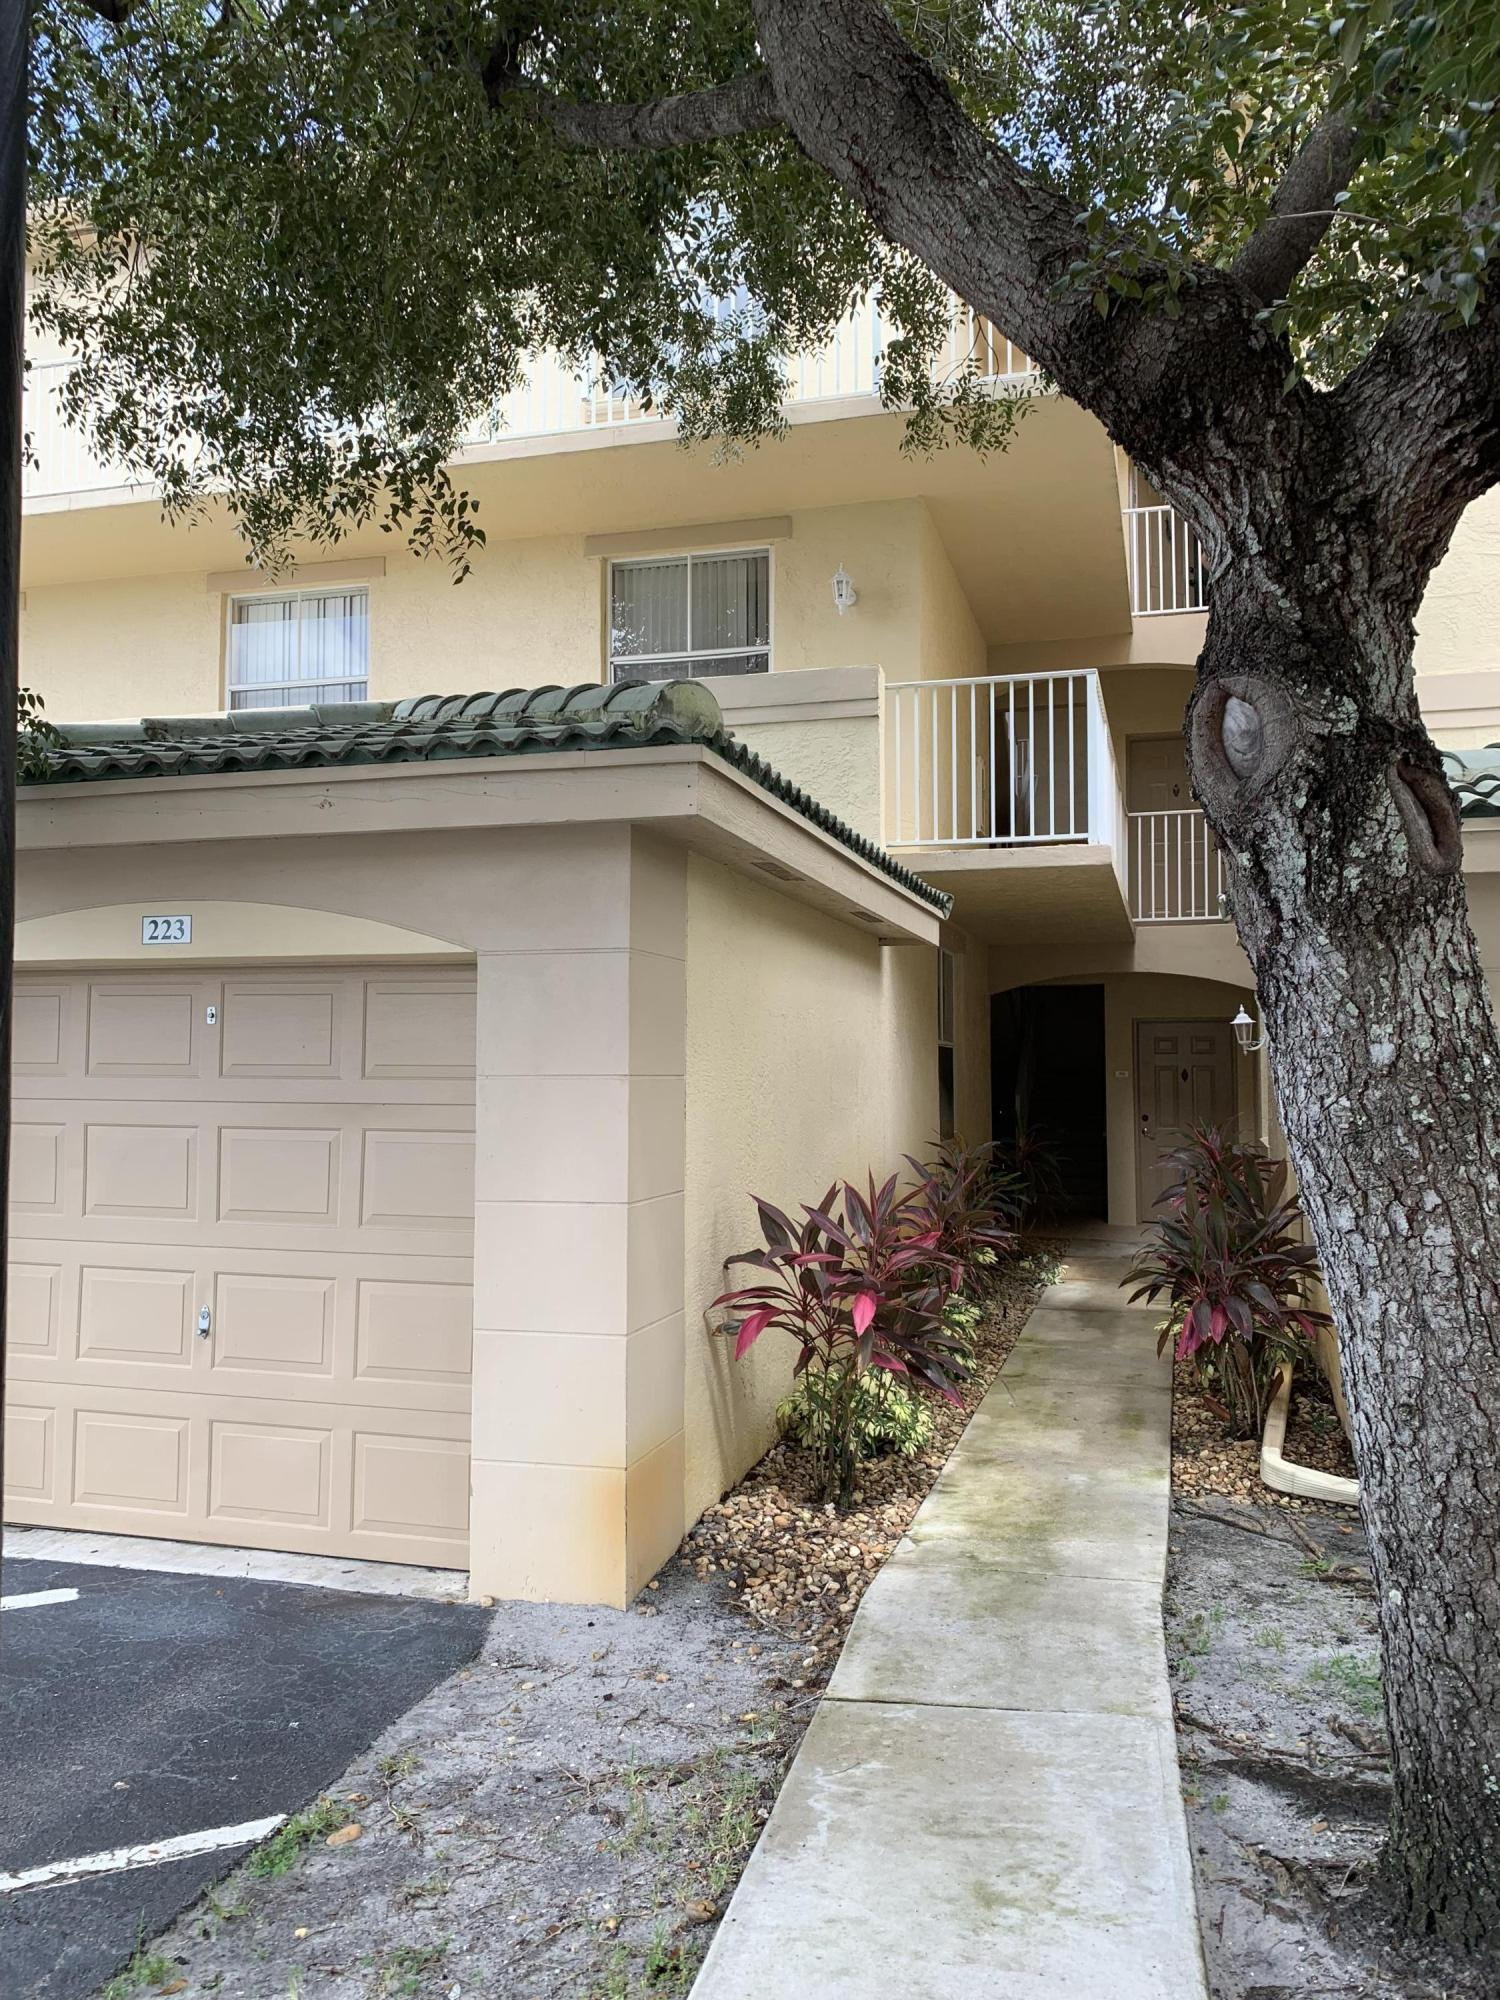 Lovely 3 bedroom, 2 bath available in Arissa Place, Wellington. This second floor unit has a balcony overlooking a water and golf course view. Includes a one car garage. Located minutes away from each of Wellington's equestrian centers.